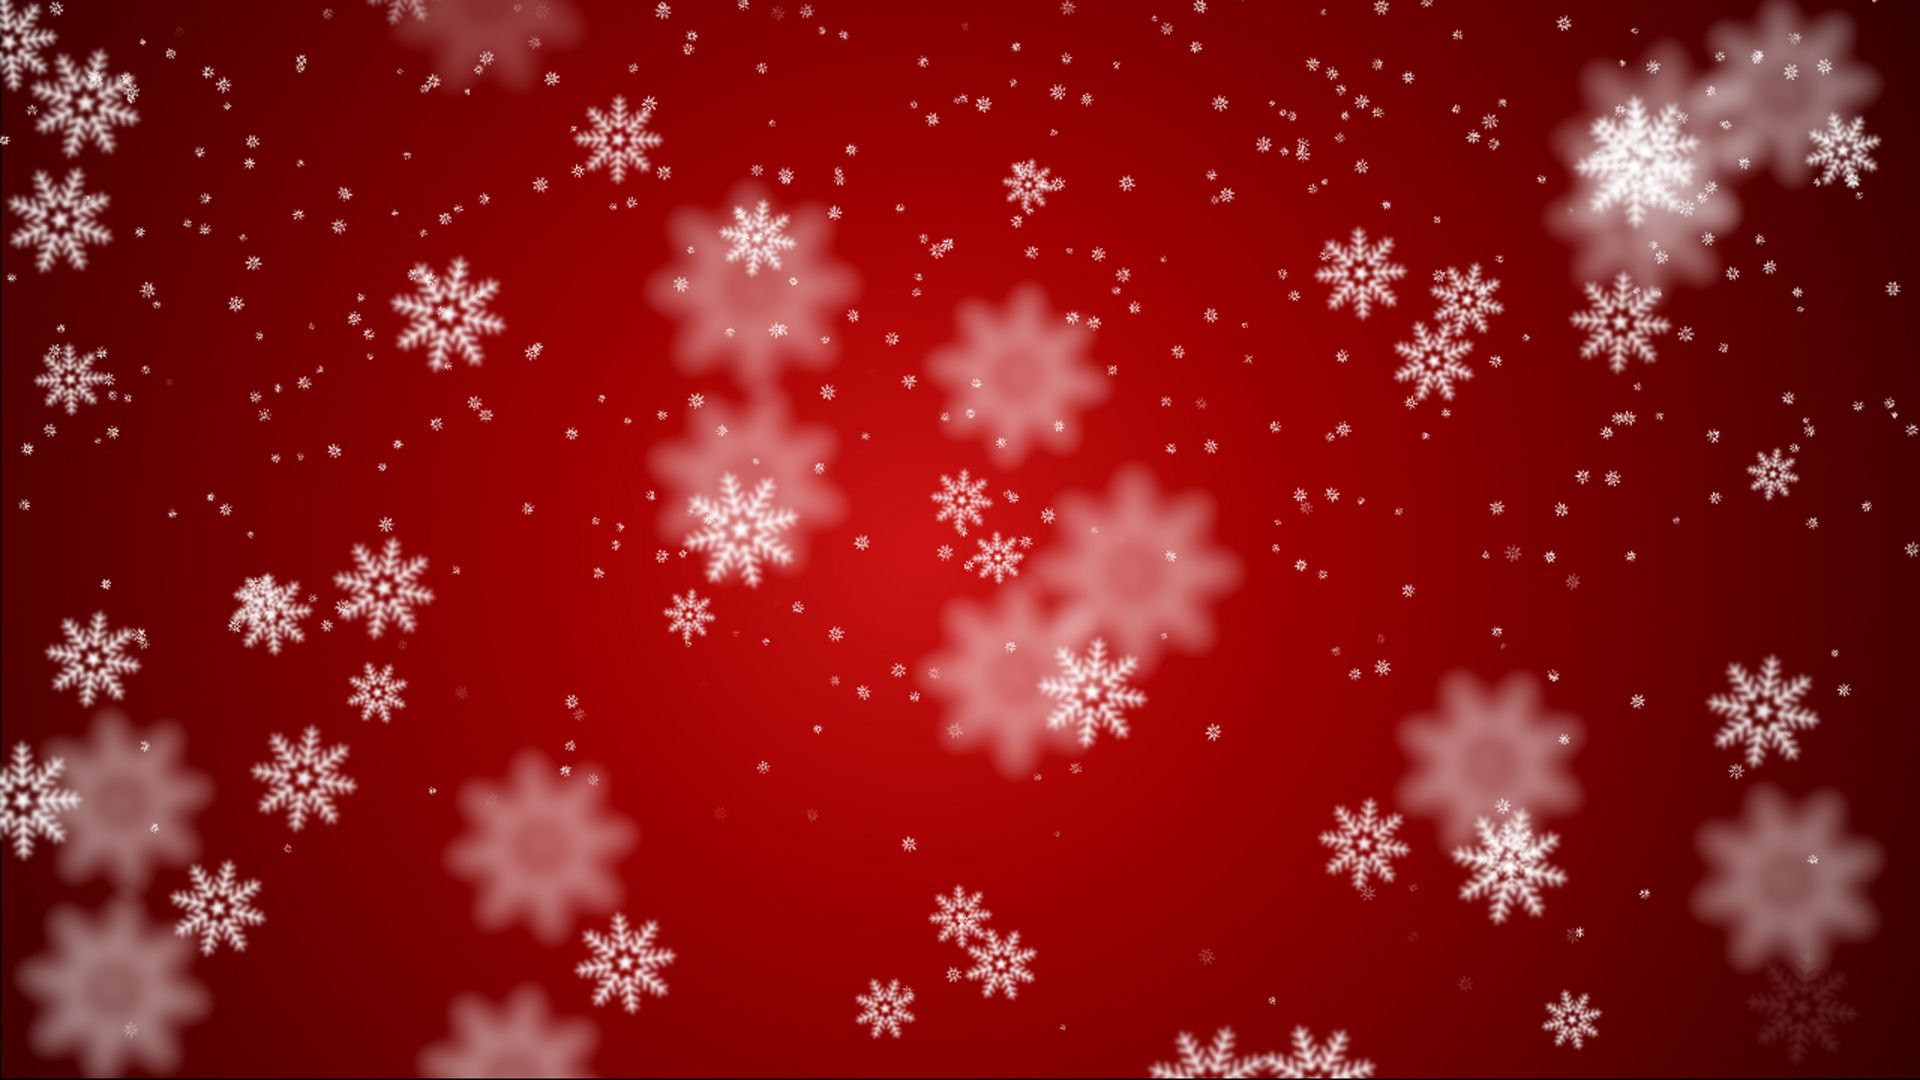 Merry Christmas Wallpaper | CHRISTMAS WALLPAPER | Red ...